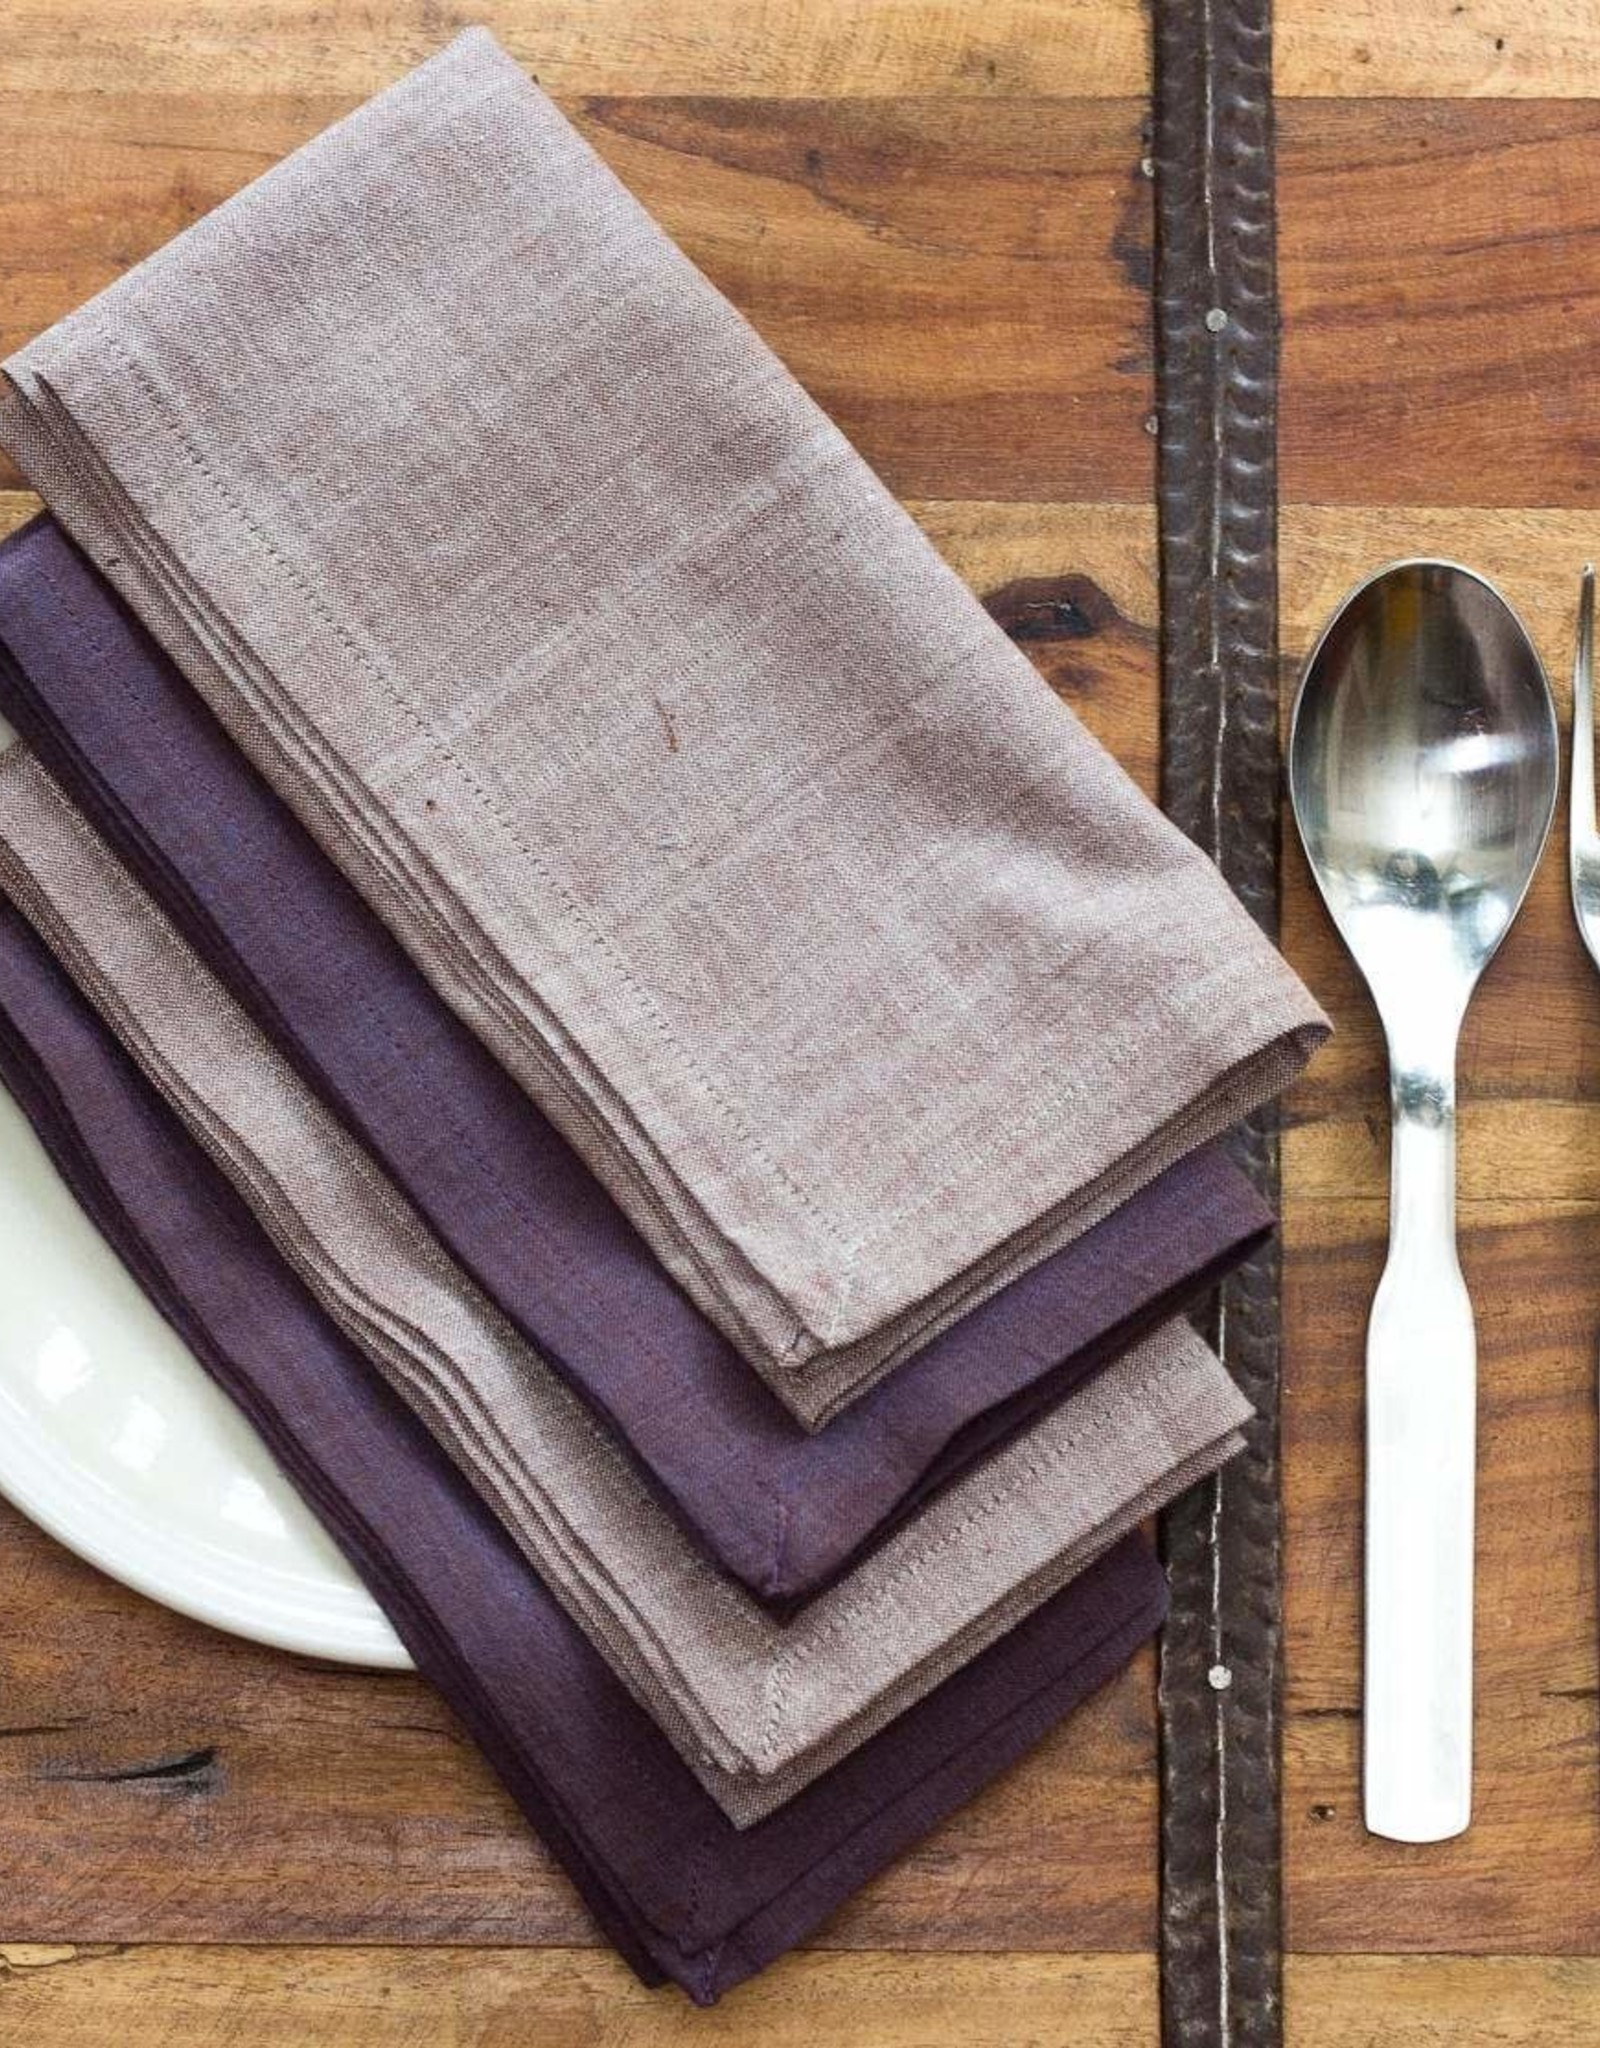 16x16 Cotton Napkins, Set of 4 - Dusk